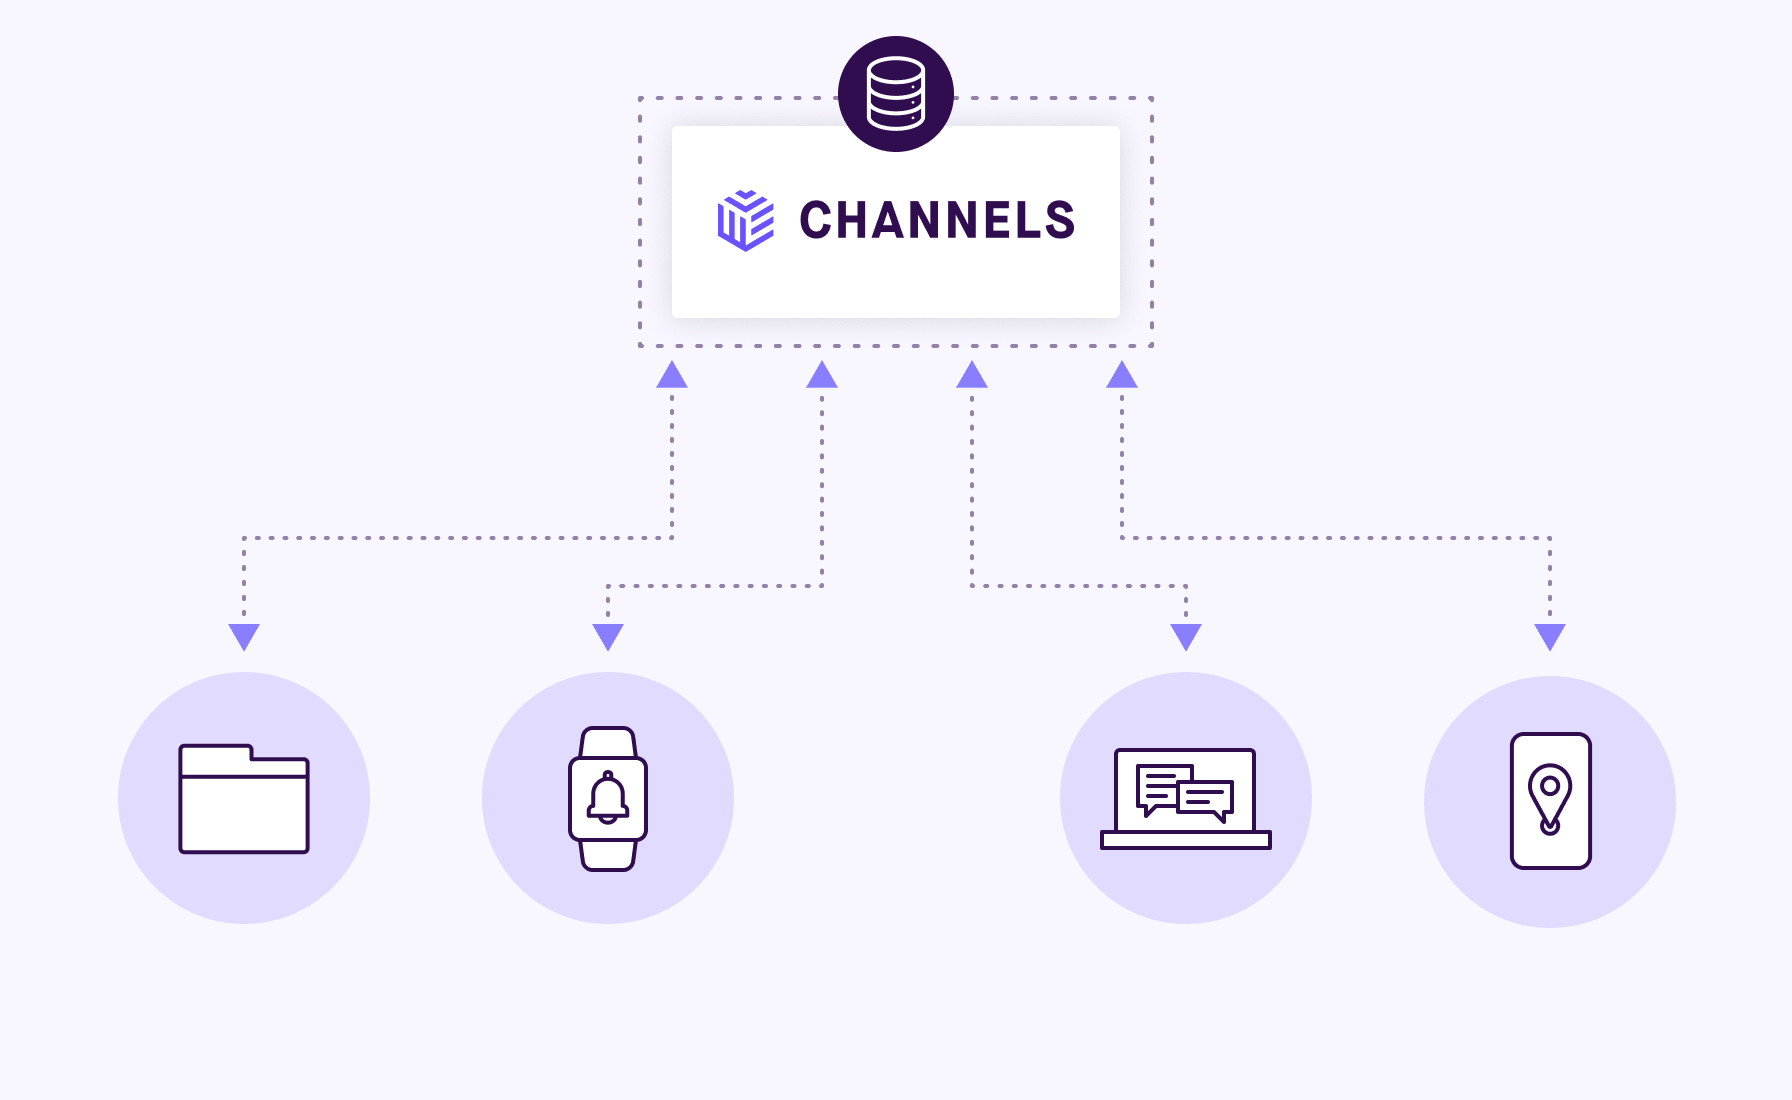 A diagram showing devices sharing data in realtime with Pusher Channels